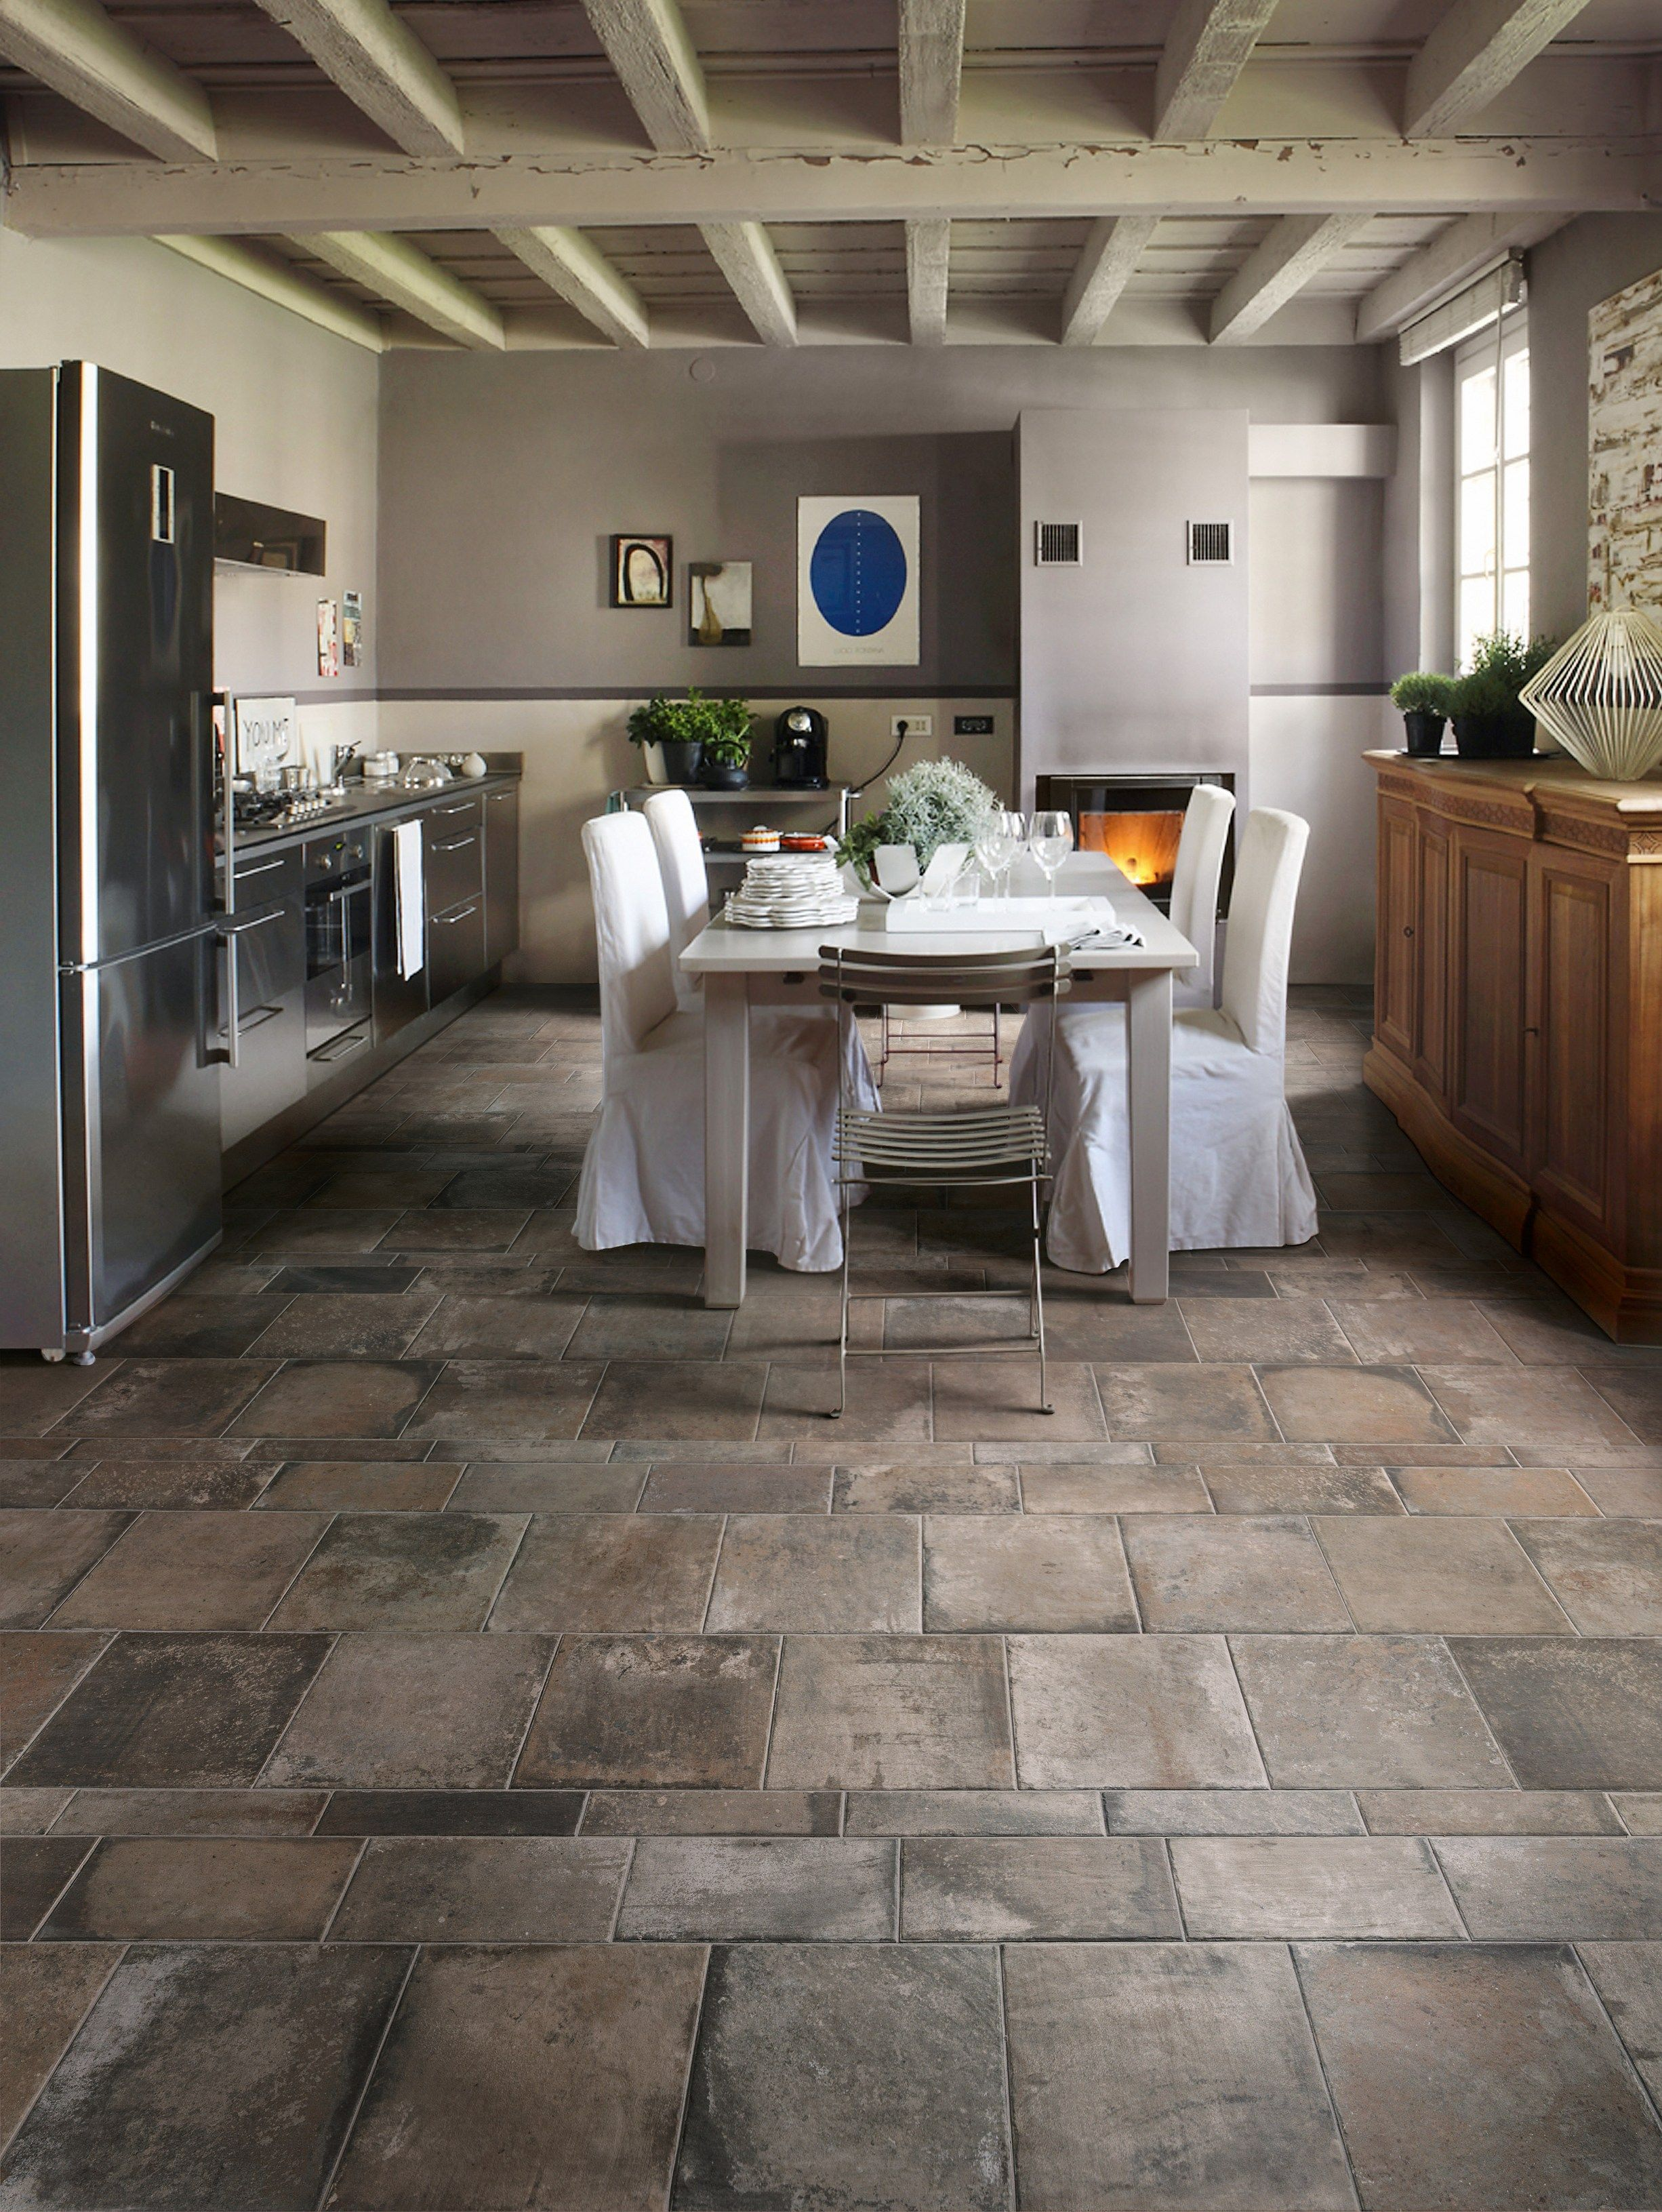 Terracotta Floor Tiles Kitchen Wall Floor Tiles With Terracotta Effect Terre Nuove By Ceramica